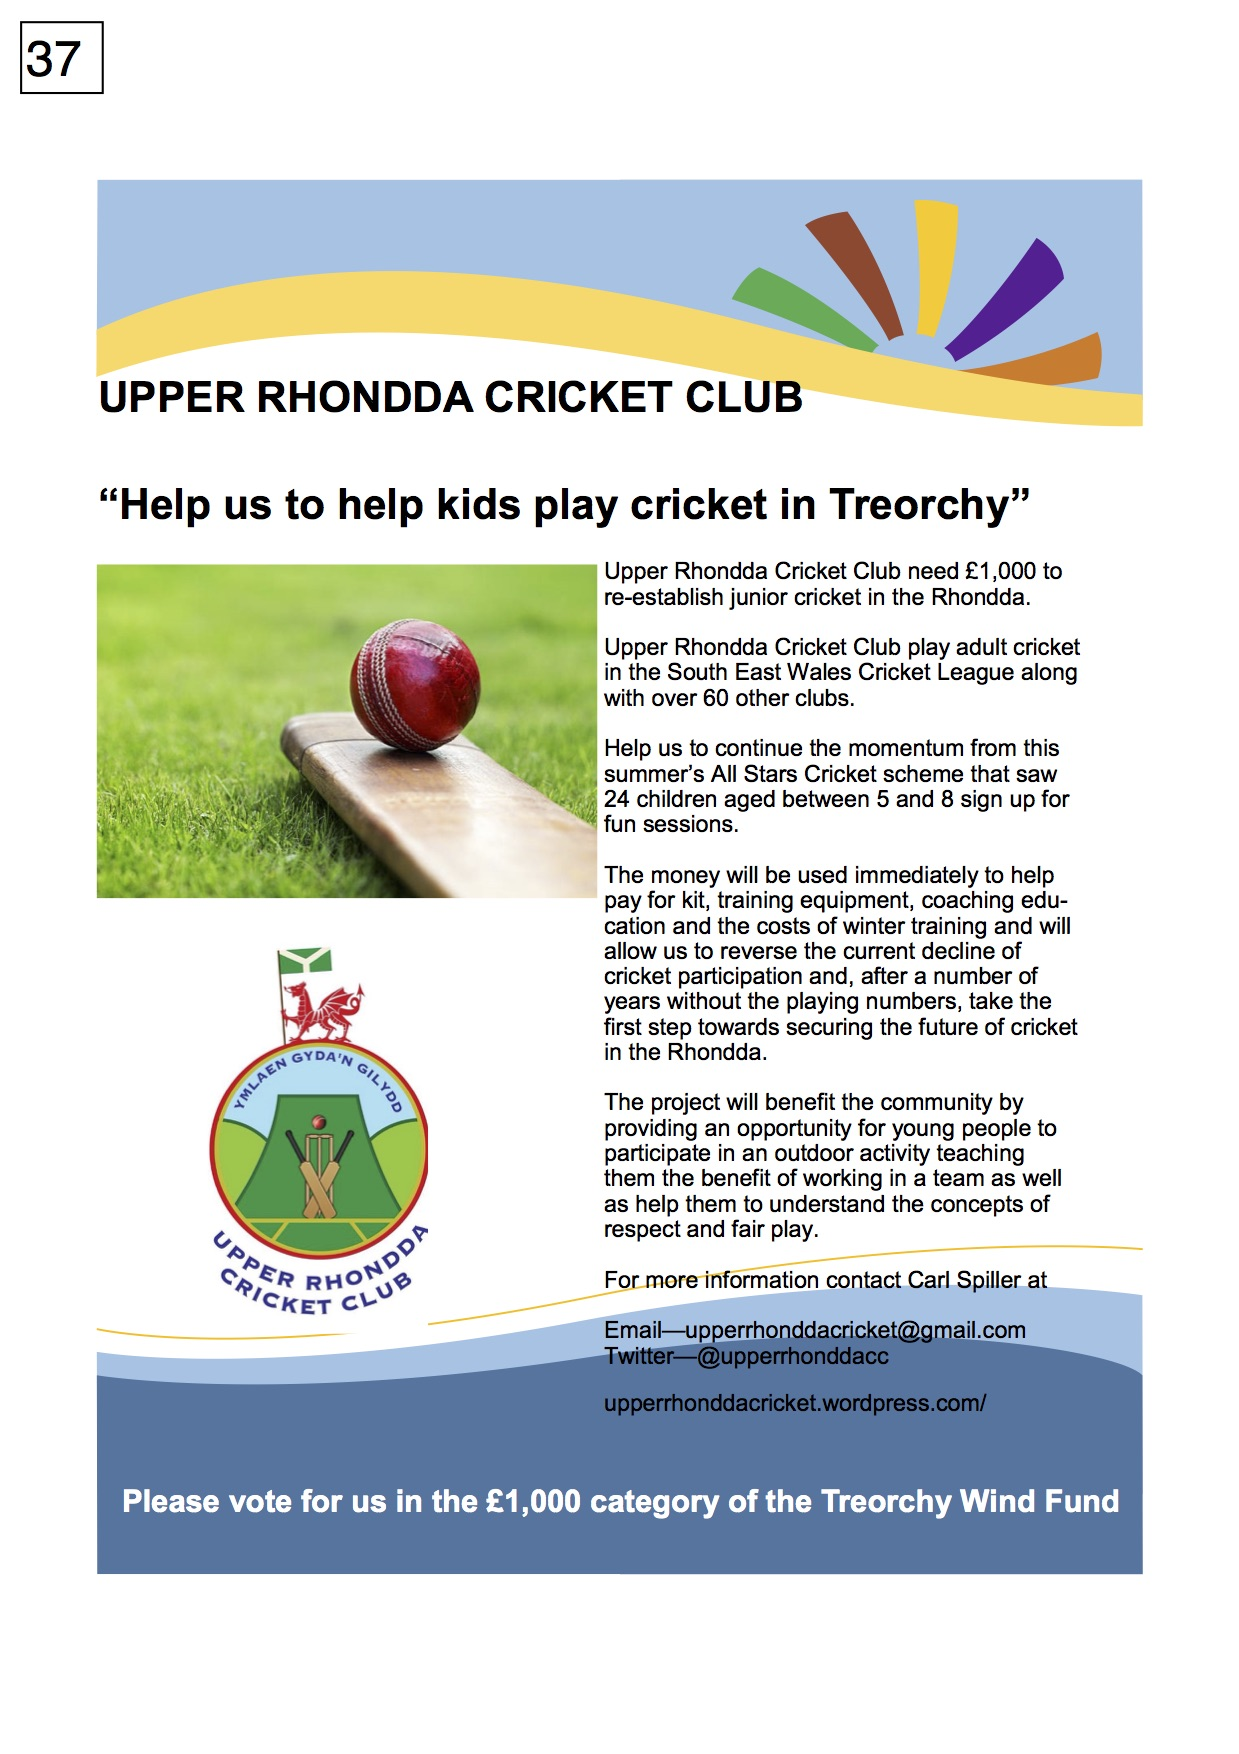 37. Upper Rhondda Cricket Club - Poster - 300917